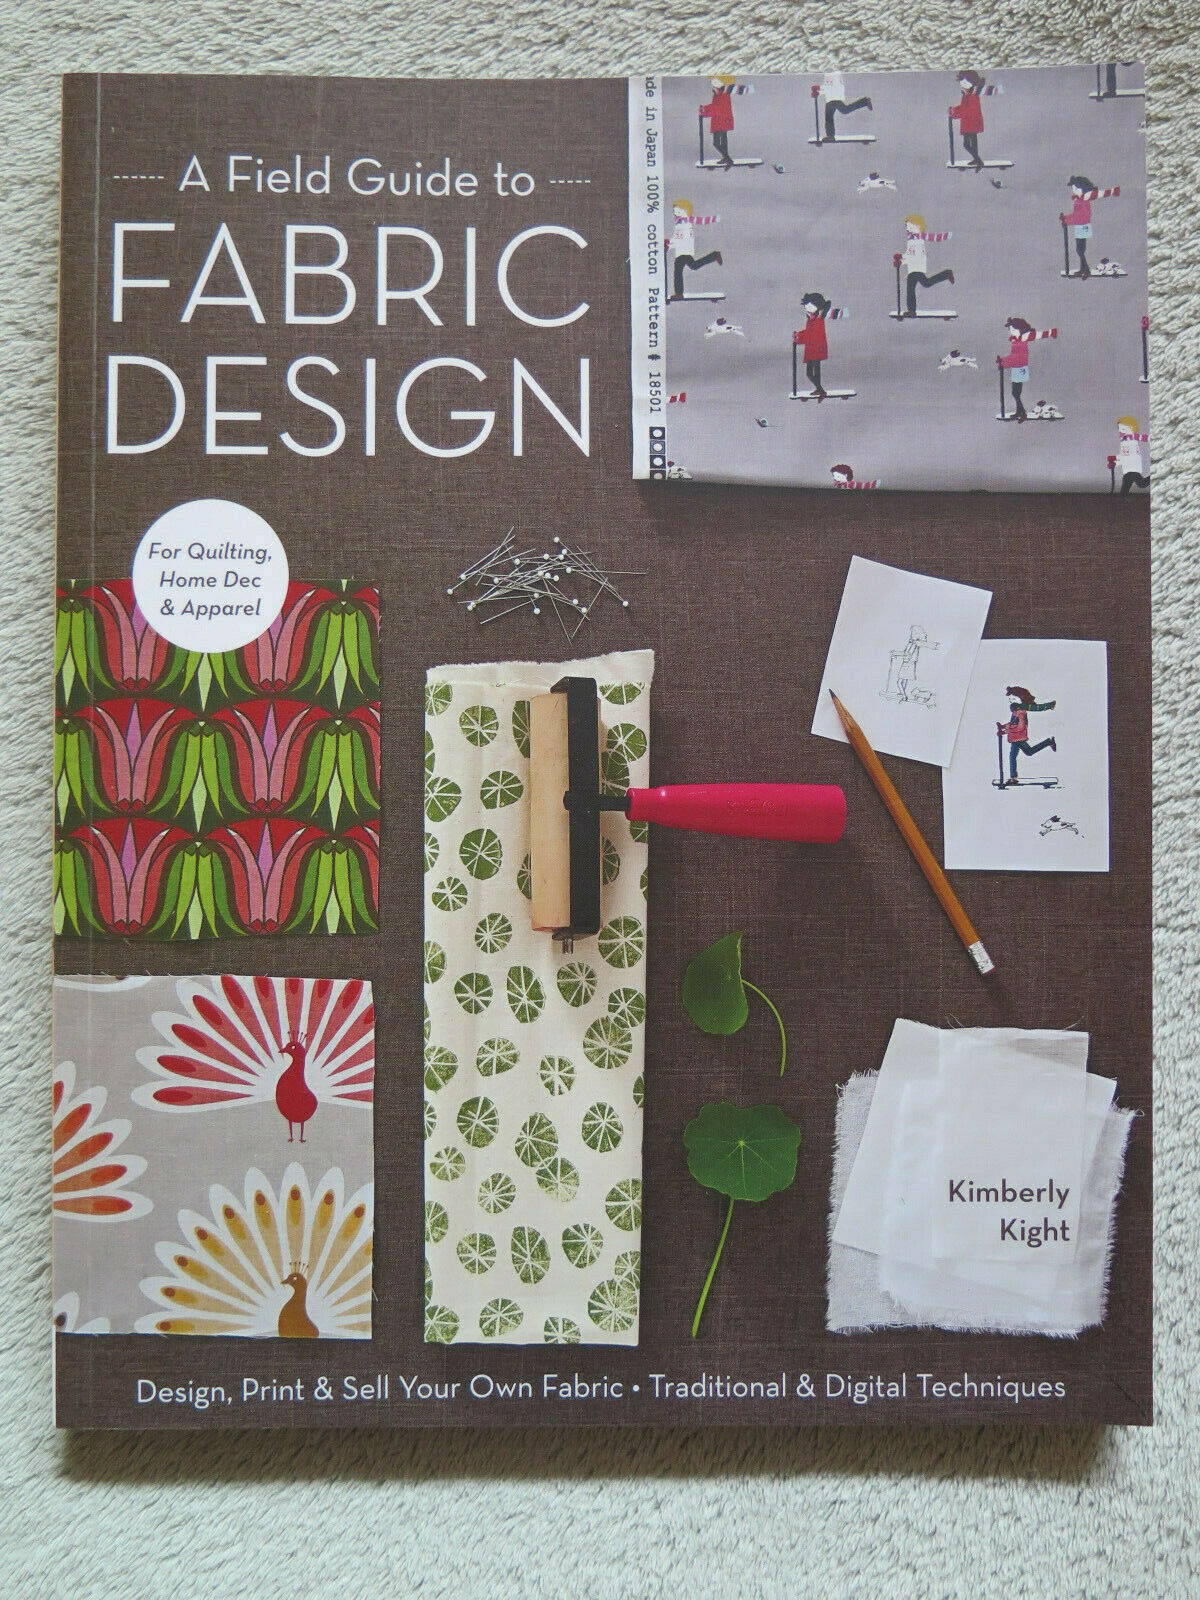 A Field Guide to Fabric Design : Design, Print and Sell Your Own Fabric